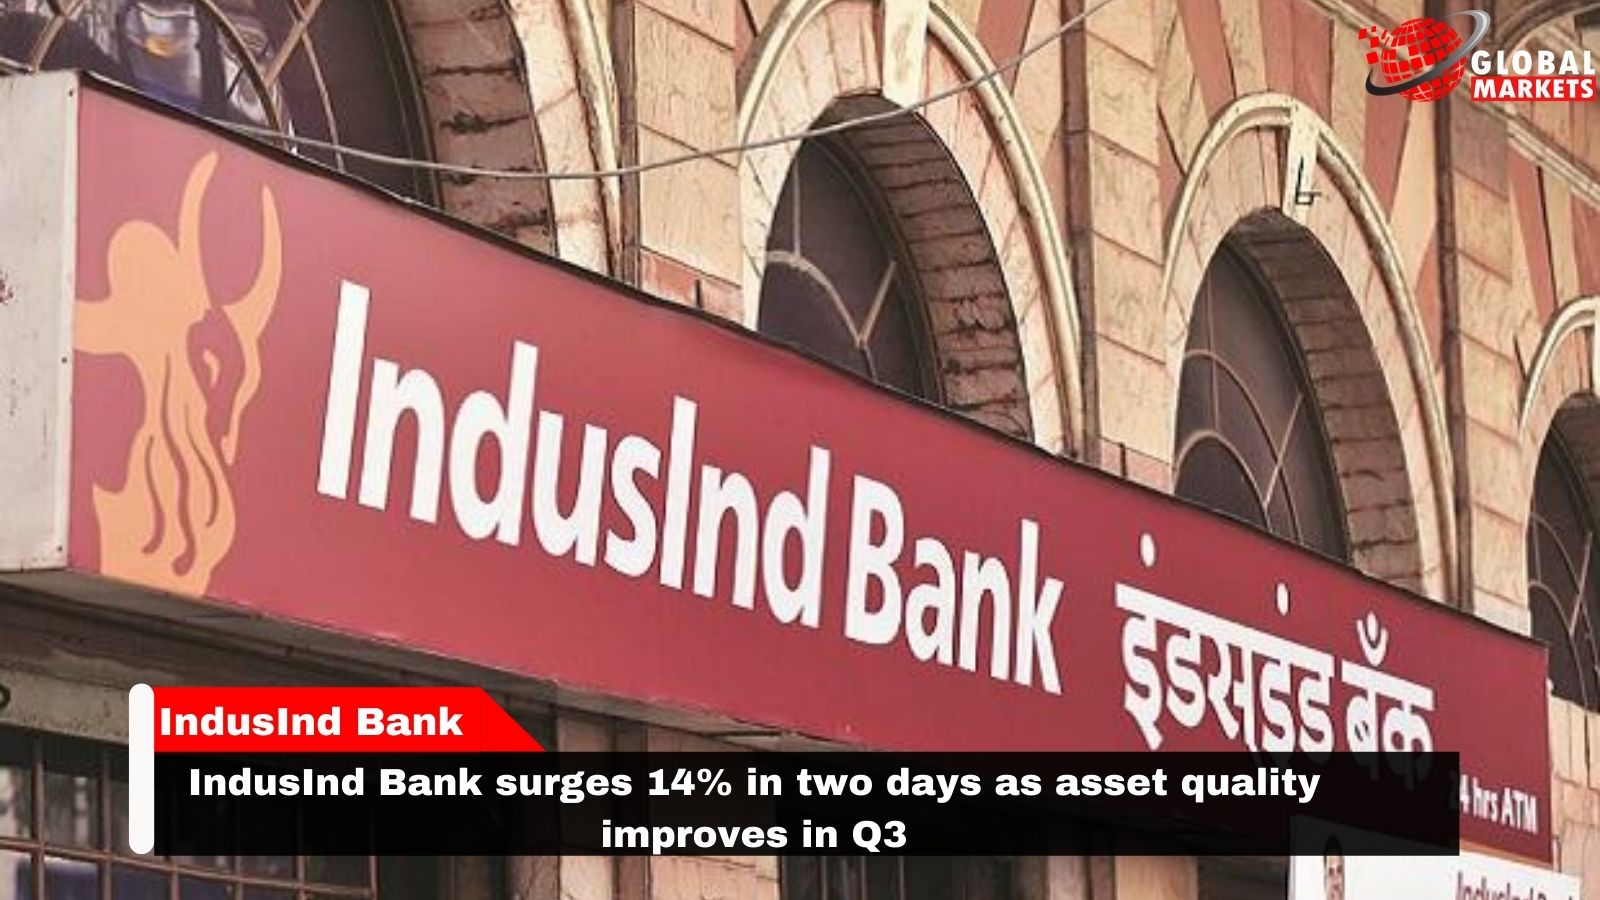 IndusInd Bank surges 14% in two days as asset quality improves in Q3